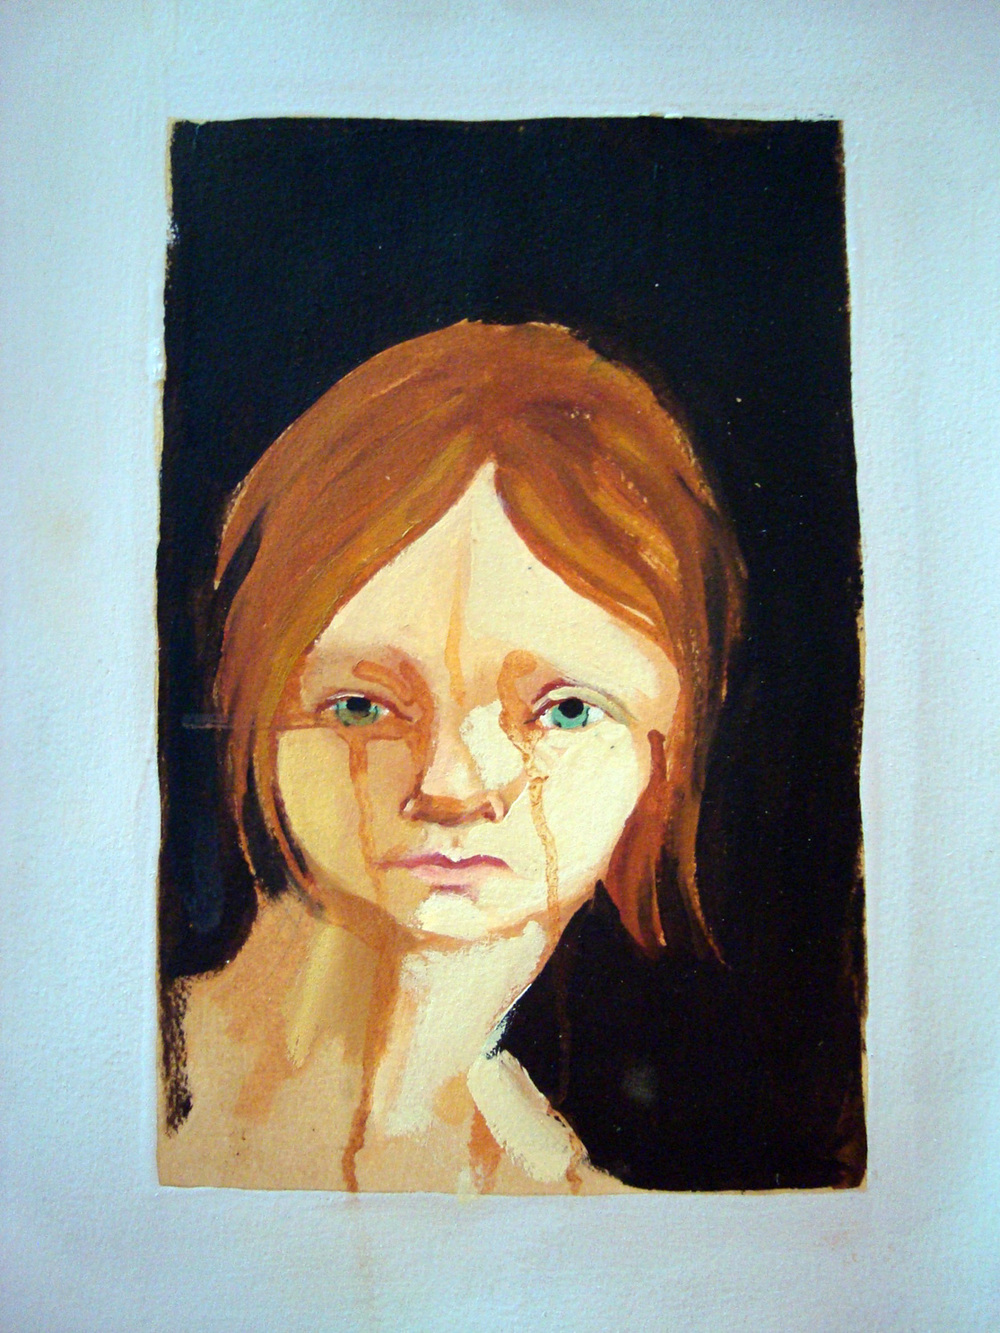 Forgotten Loves II, Oil on paper, 30x60 cm, 2010